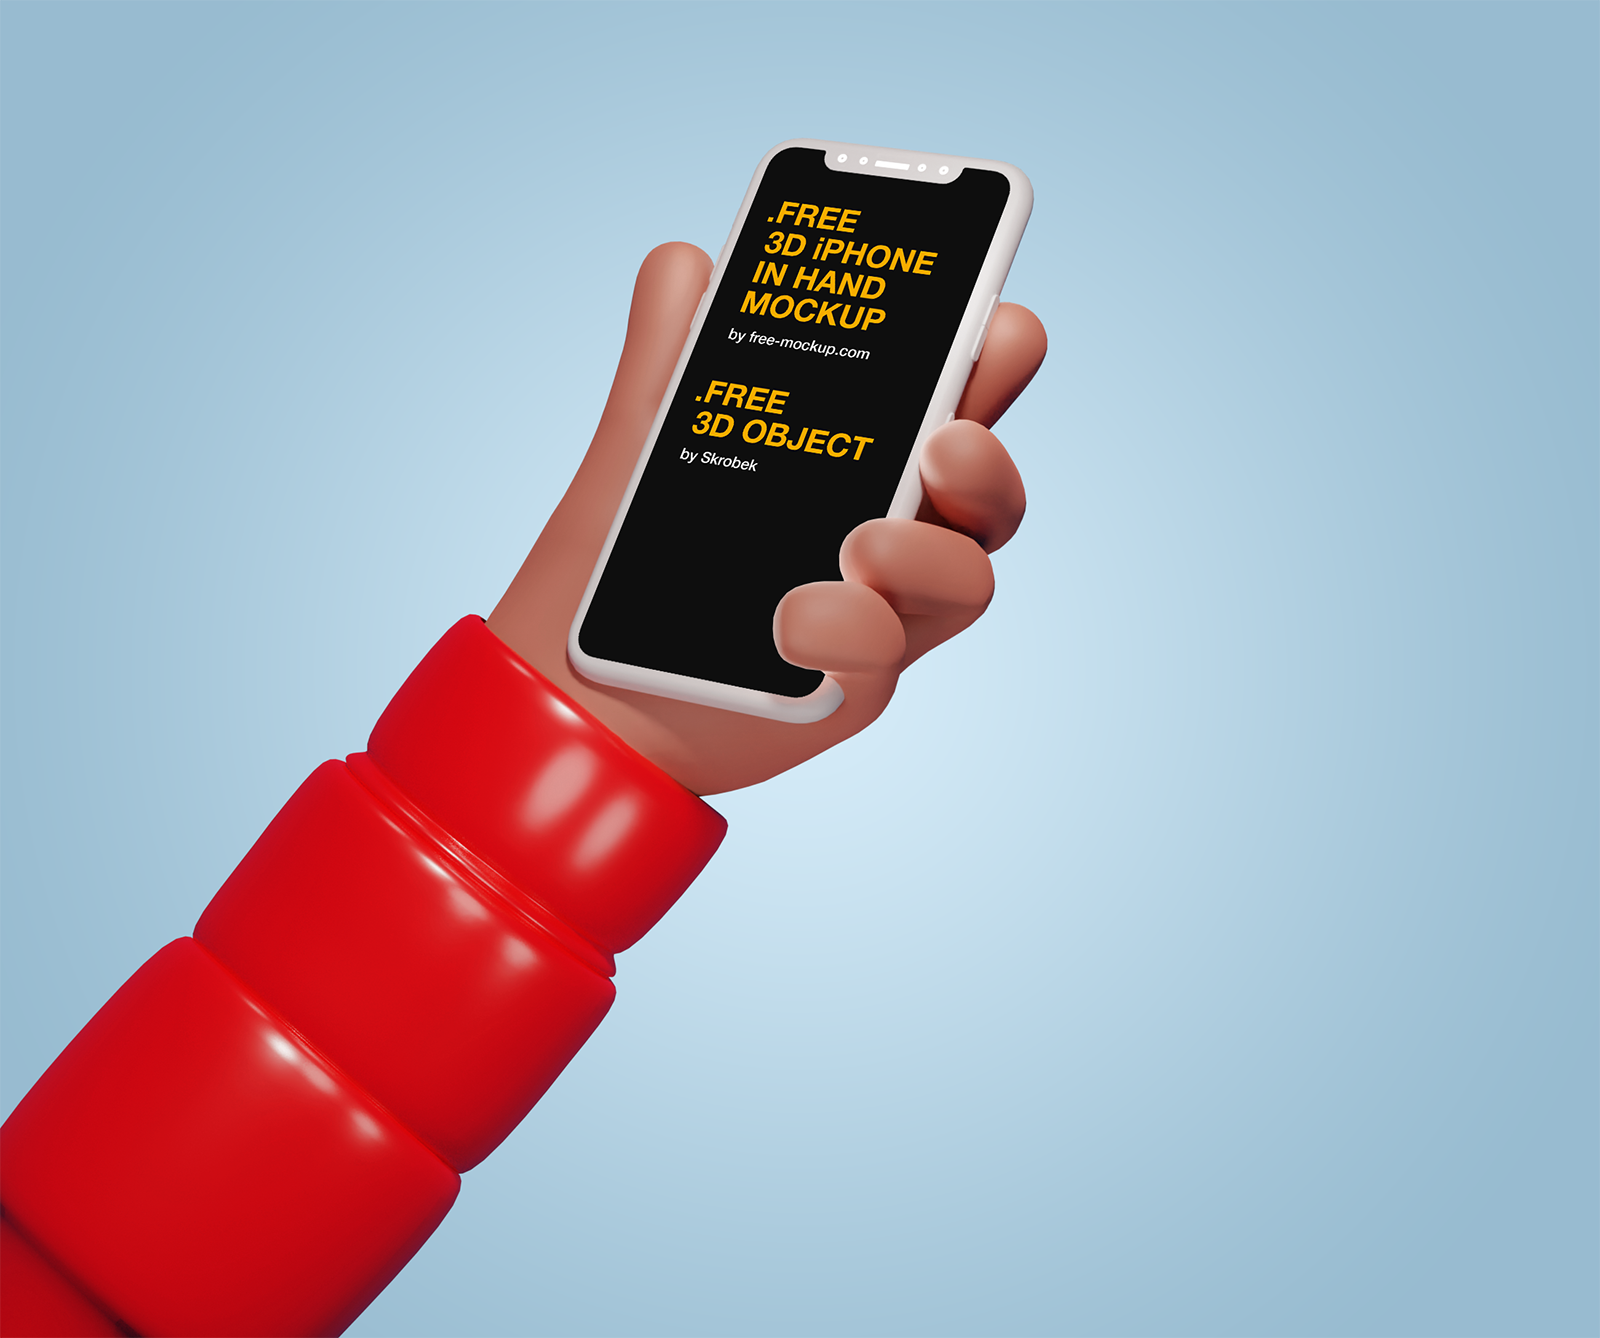 Download Free 3d Iphone In Hand Mockup Free Mockup Mockup Free Mockup Iphone